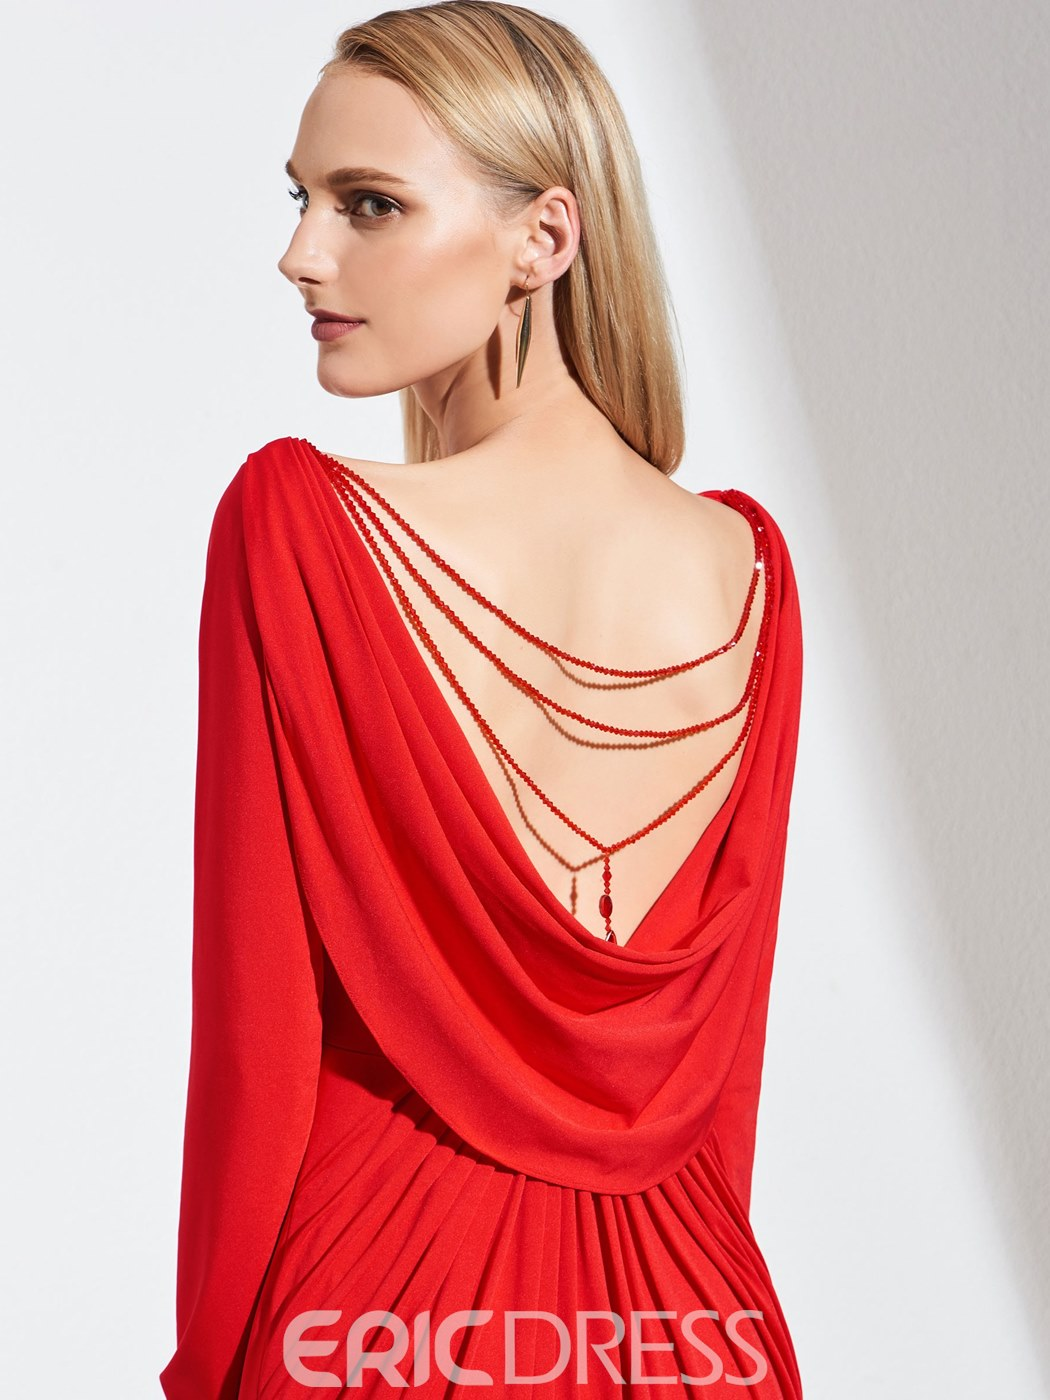 Ericdress Sheath Long Sleeve Red Evening Dress With Drapped Back